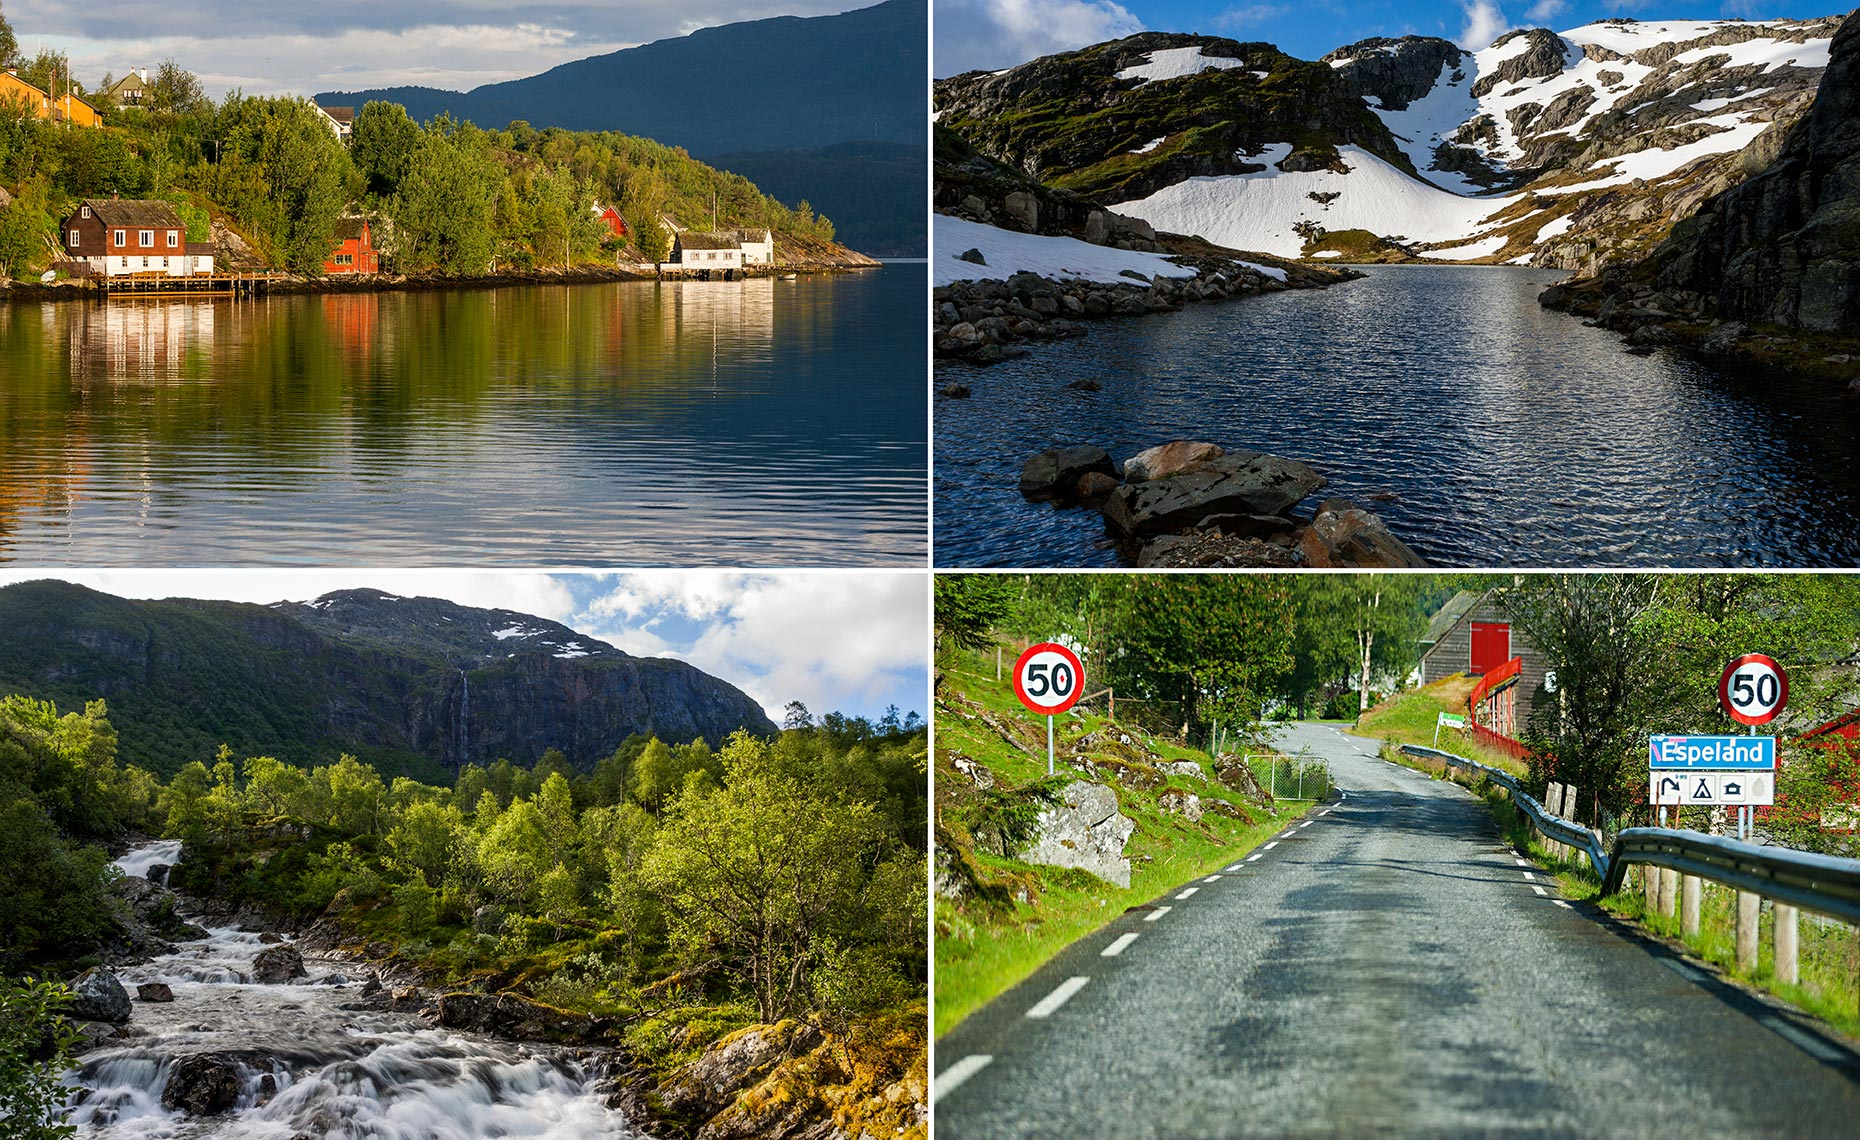 50_Folgefonna_Fonna_Norway_Environment_Landscape_Chris_Wellhausen_Photography.JPG